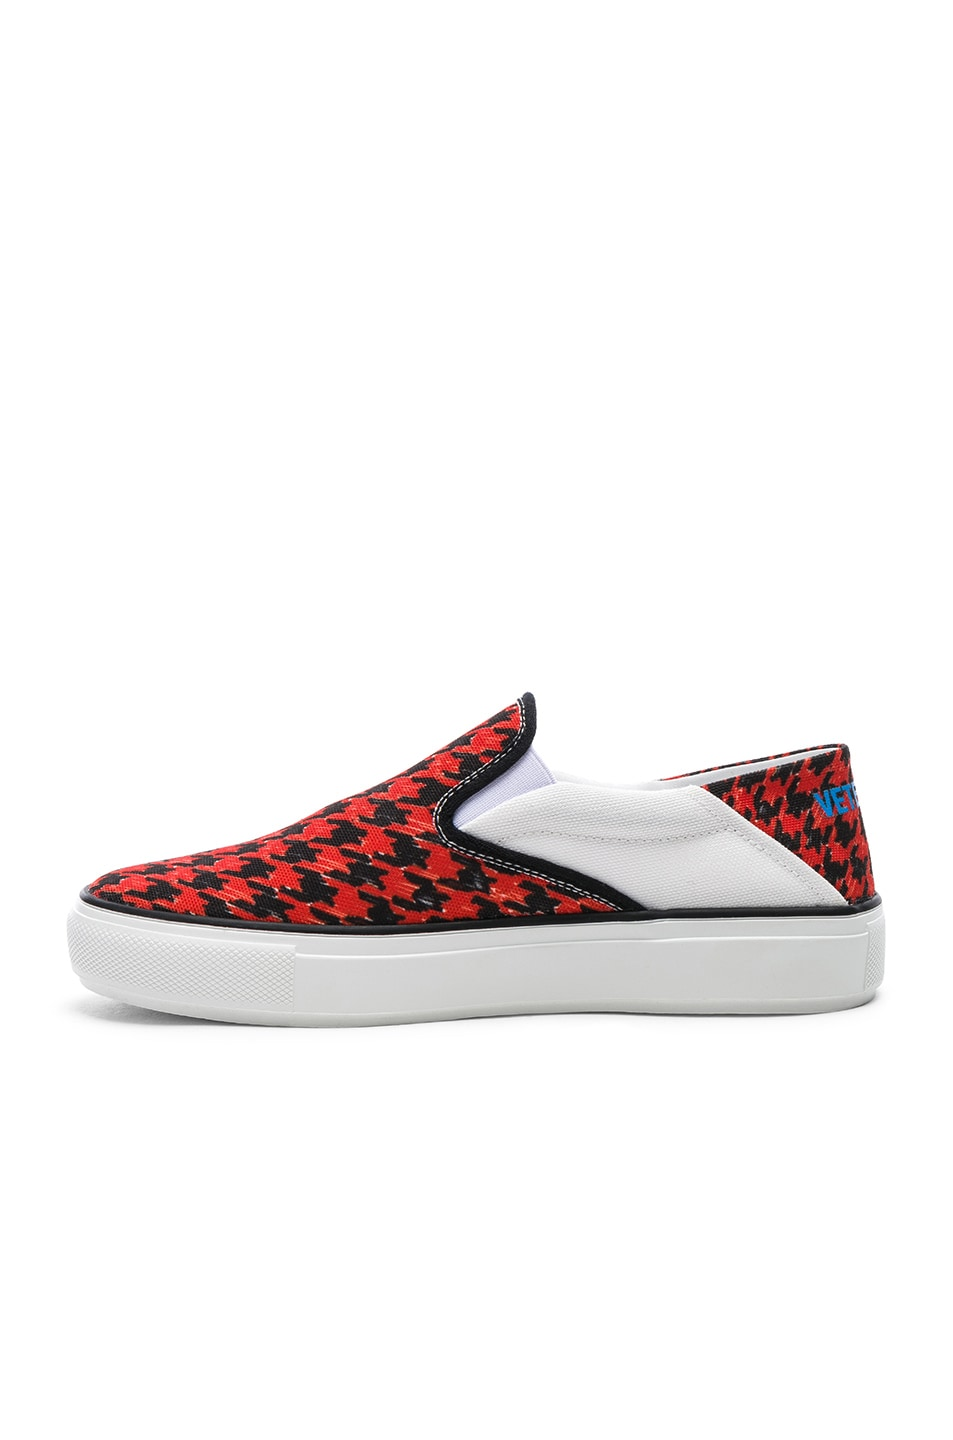 Image 5 of VETEMENTS Canvas Checkerboard Slip On Sneakers in Red & Black